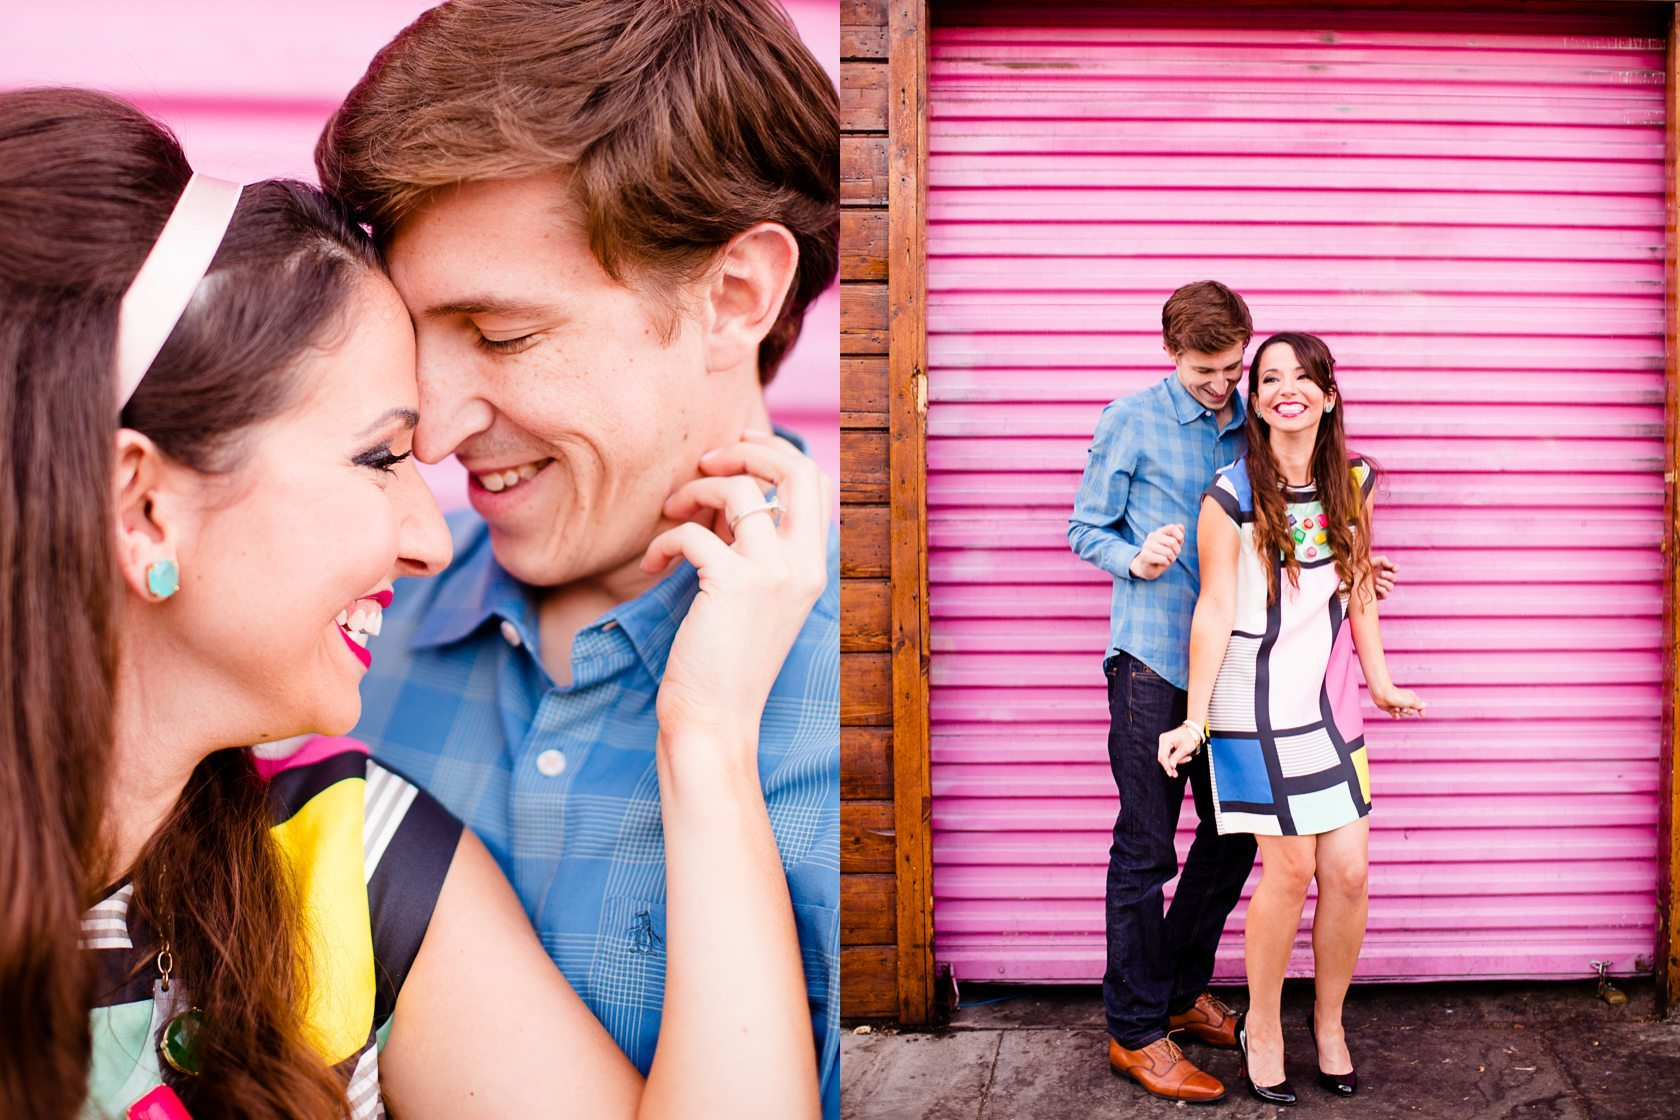 Kate_Spade_Engagement_Session_37.jpg